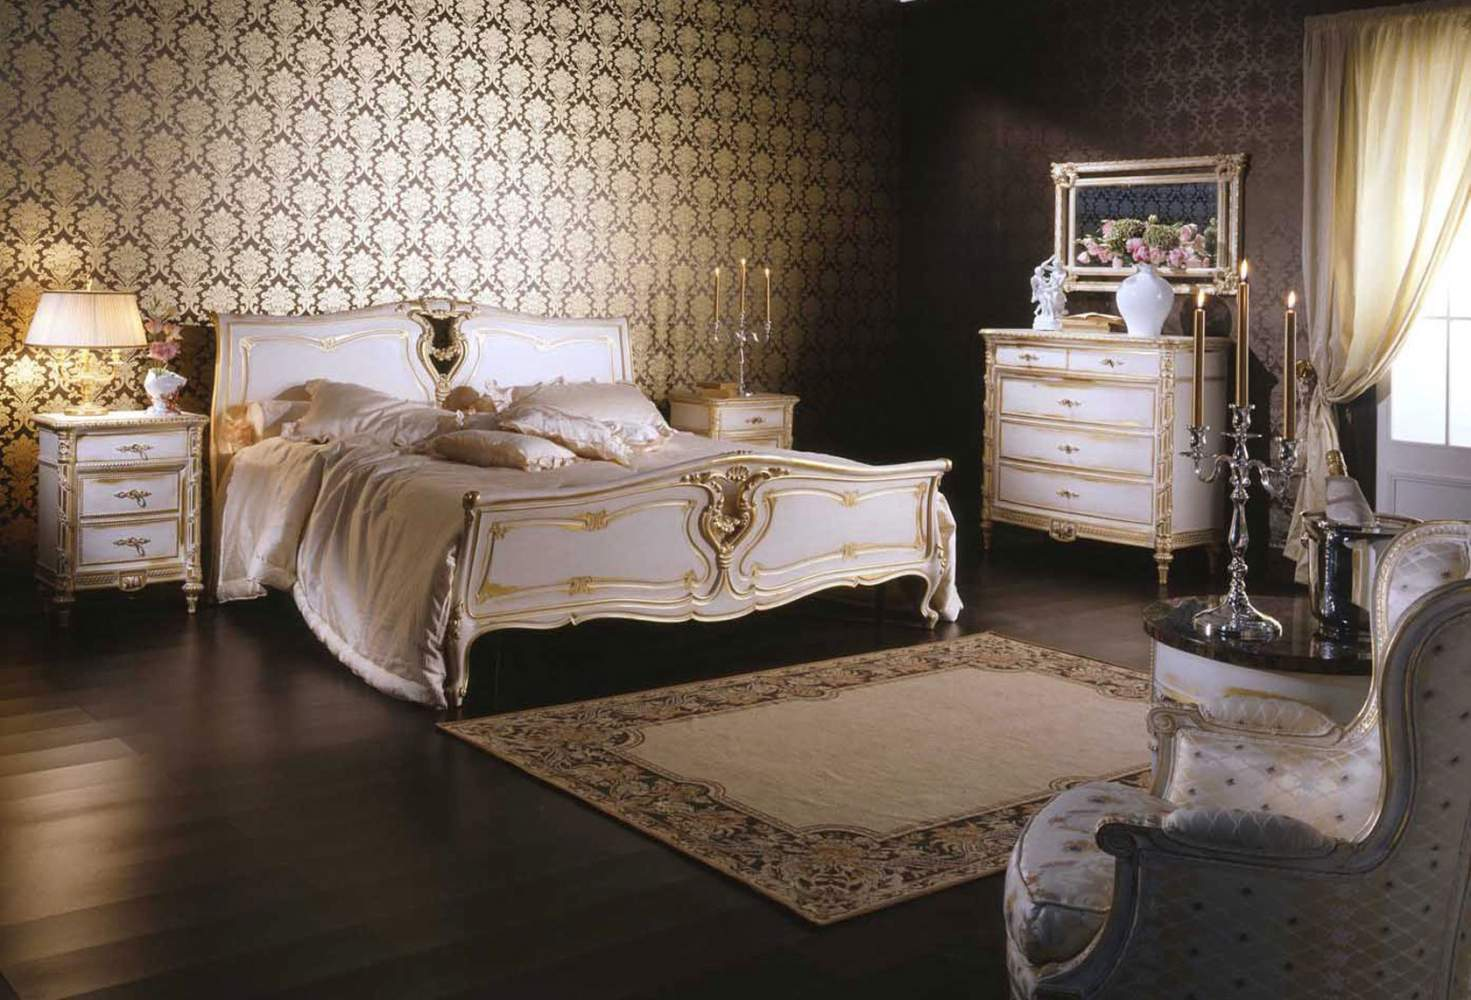 Classic Louis XVI bedroom, wood bed, night tables, carved chest of drawers